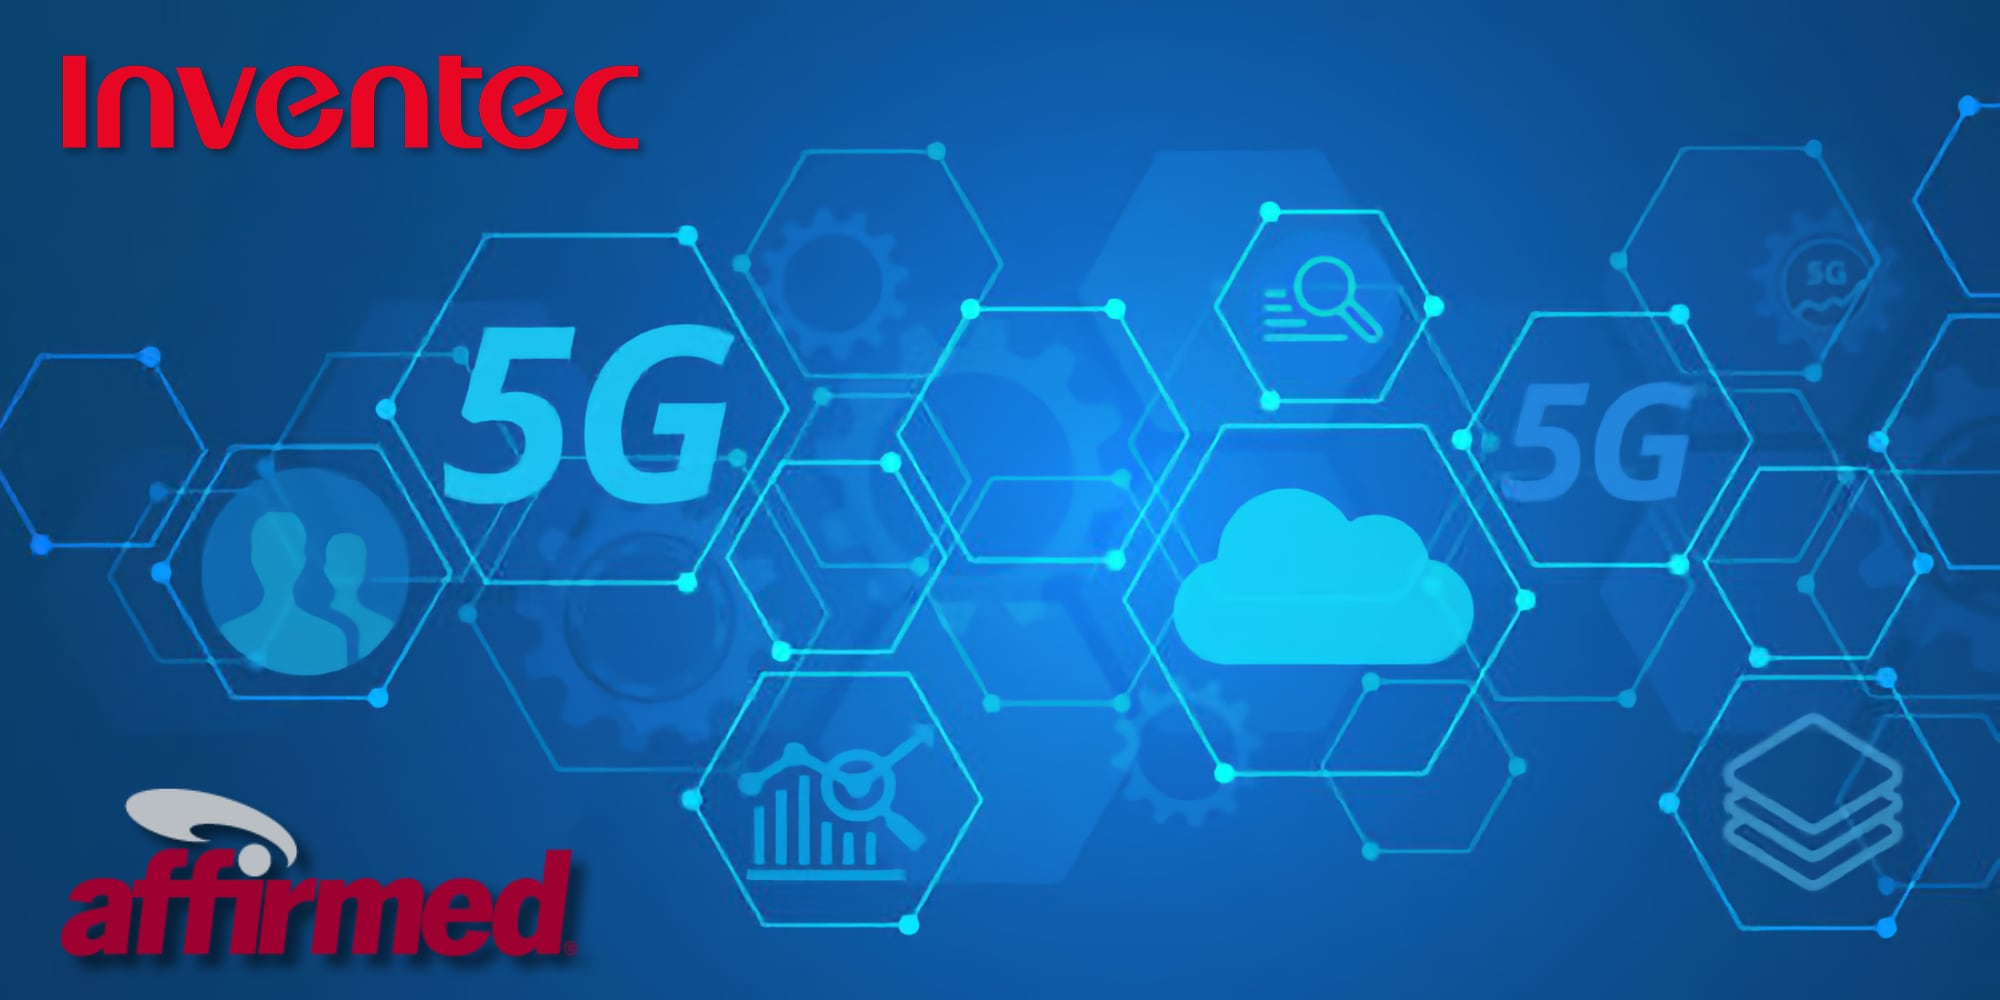 Microsoft will build Inventec's private 5G networks for smart manufacturing